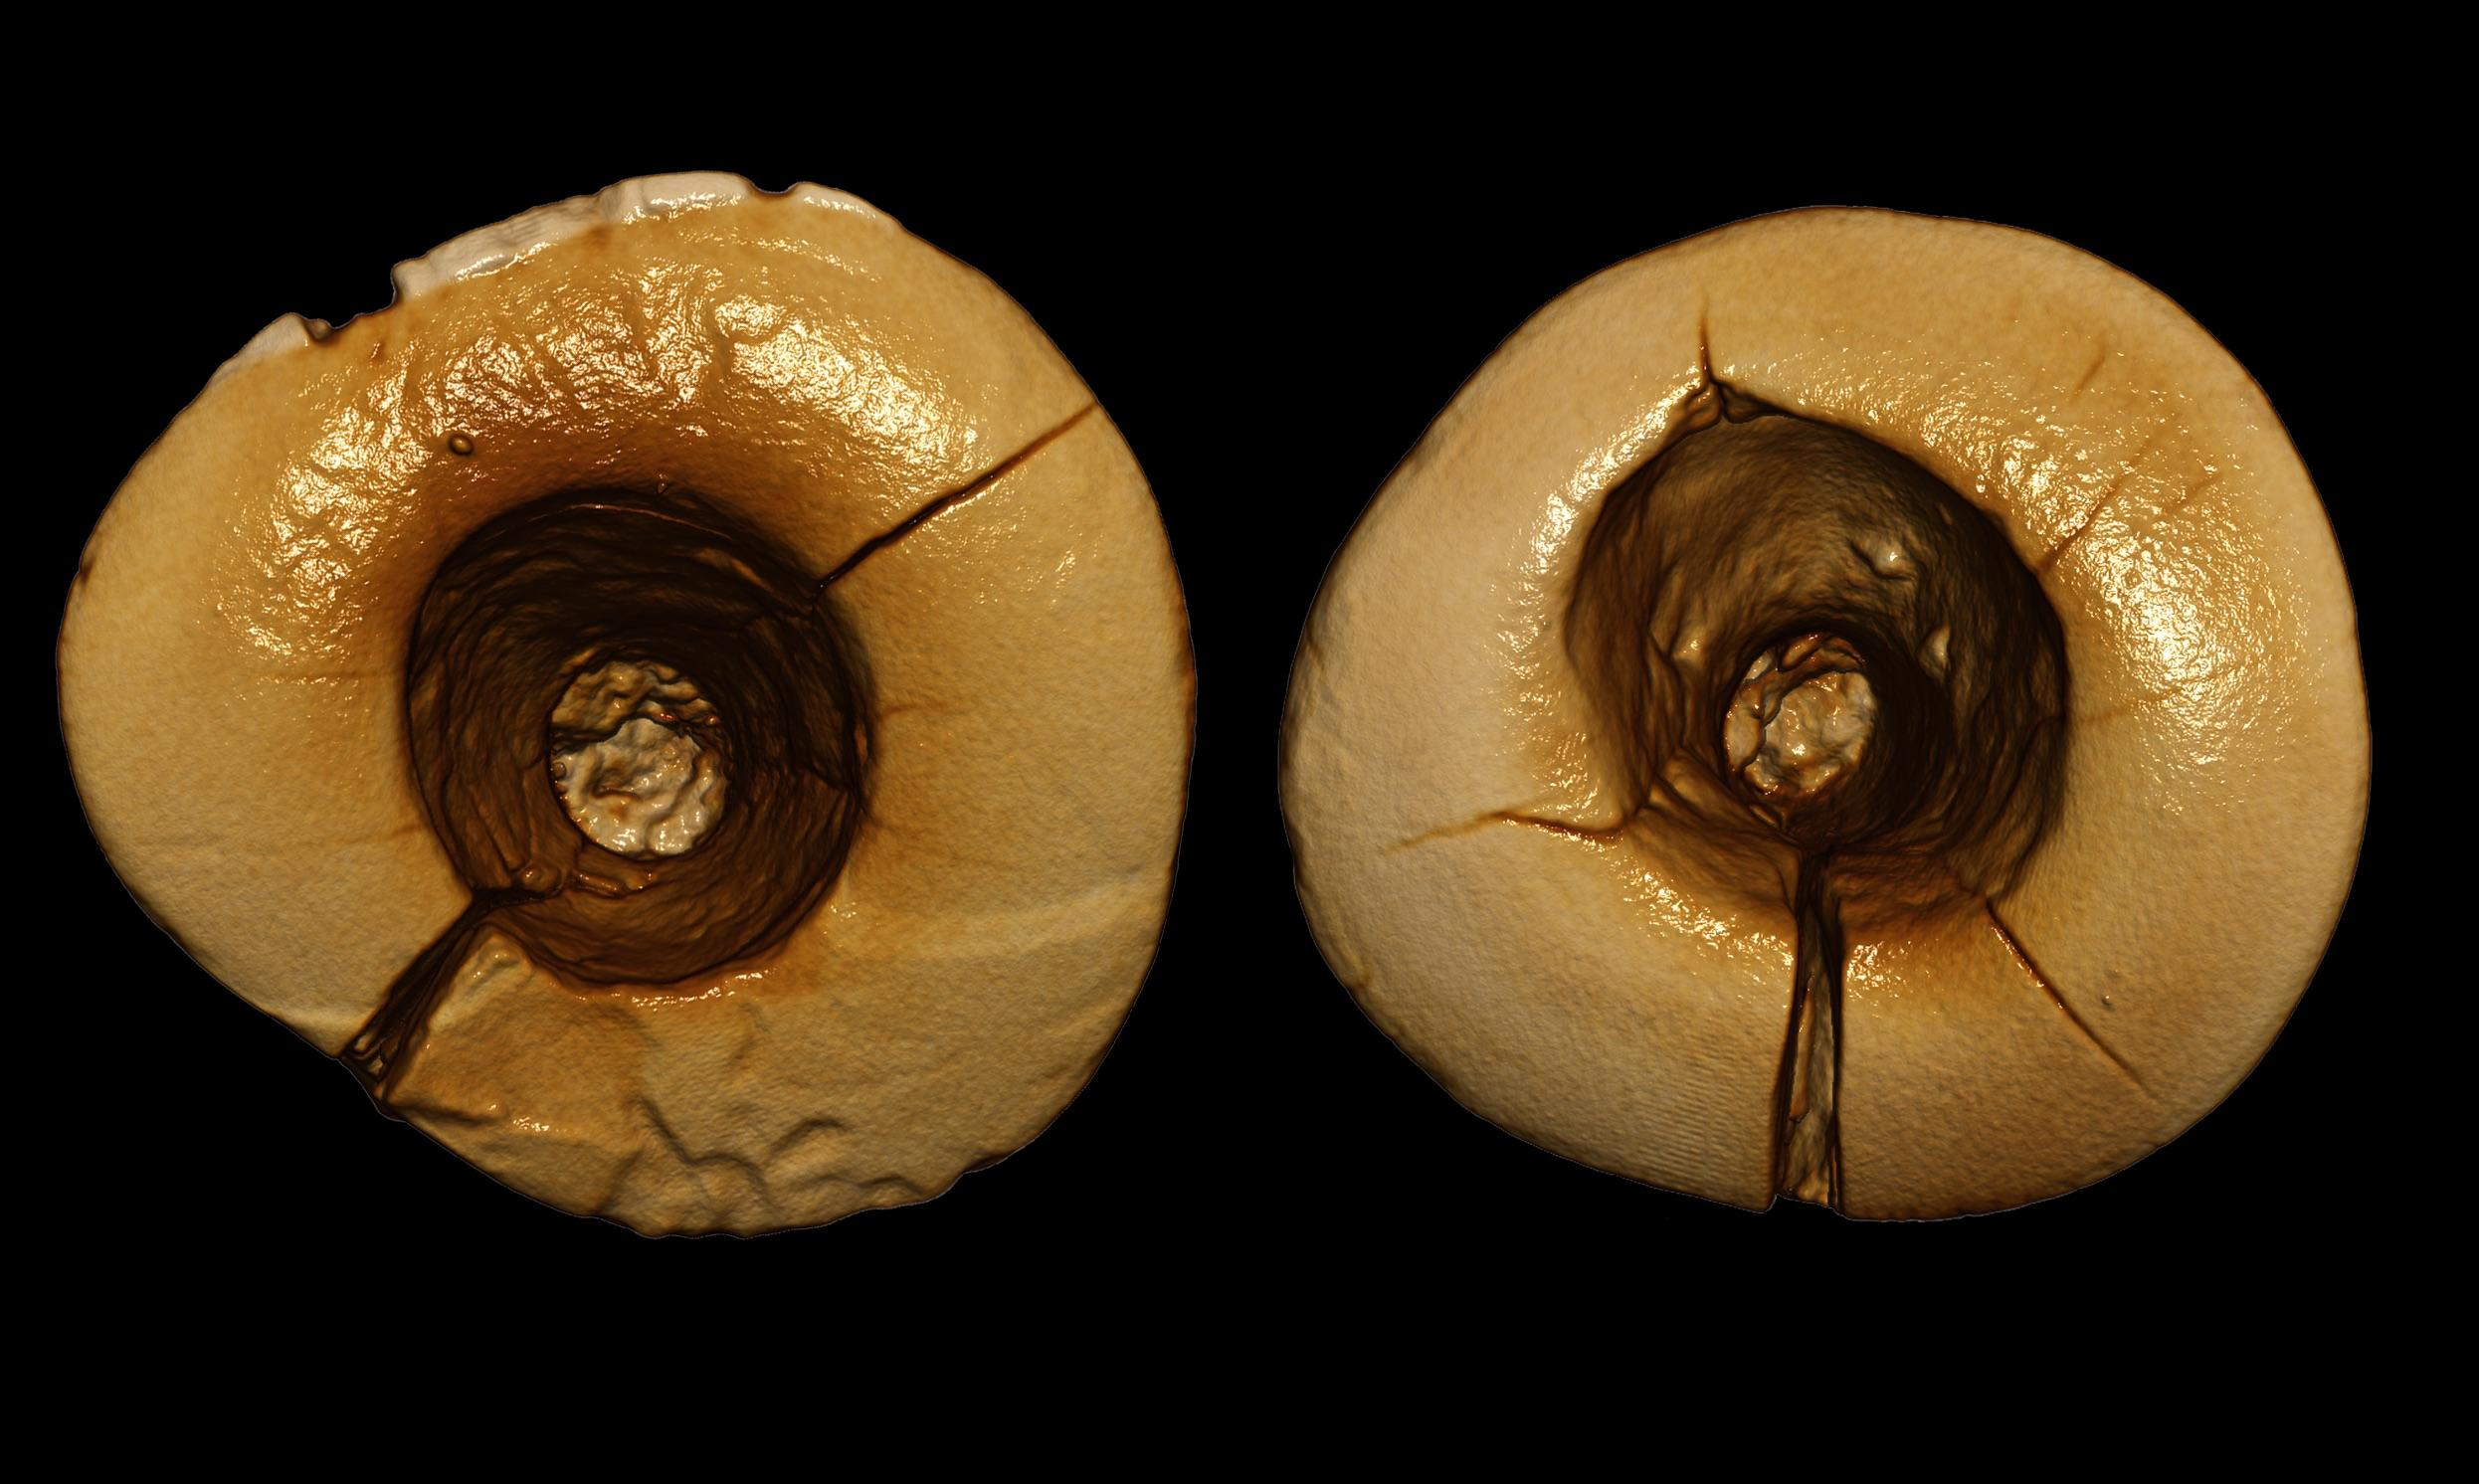 Earliest Dental Fillings Discovered in 13,000-Year-Old Skeleton